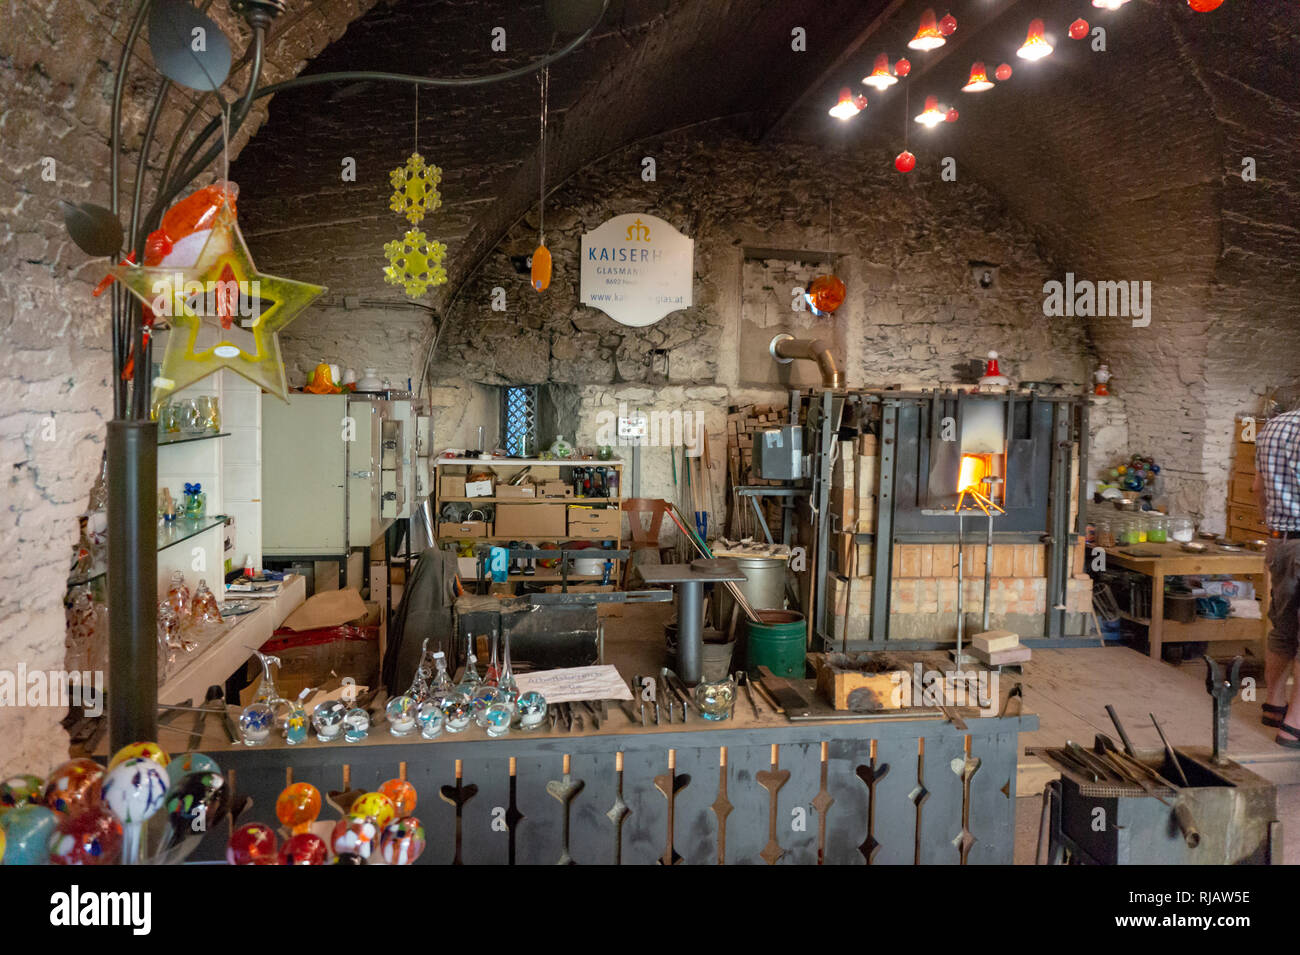 Neuberg an der Mürz , Austria - 15.11.2018: Glass manufature Kaiserhof Glass manufacture with colorful glassware at glass factory workshop workhouse - Stock Image